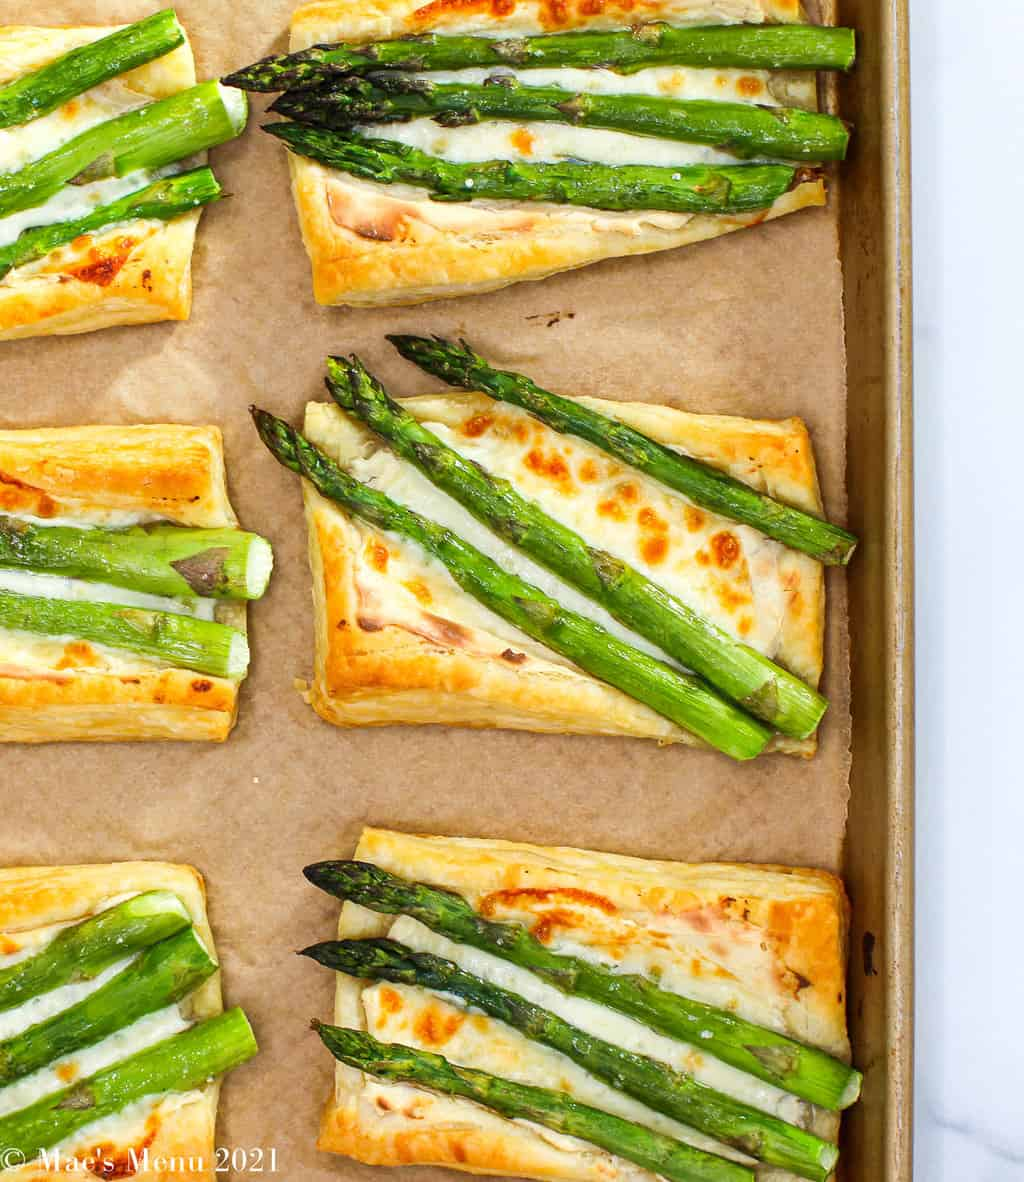 An overhead shot of cheesy asparagus tarts on a baking sheet